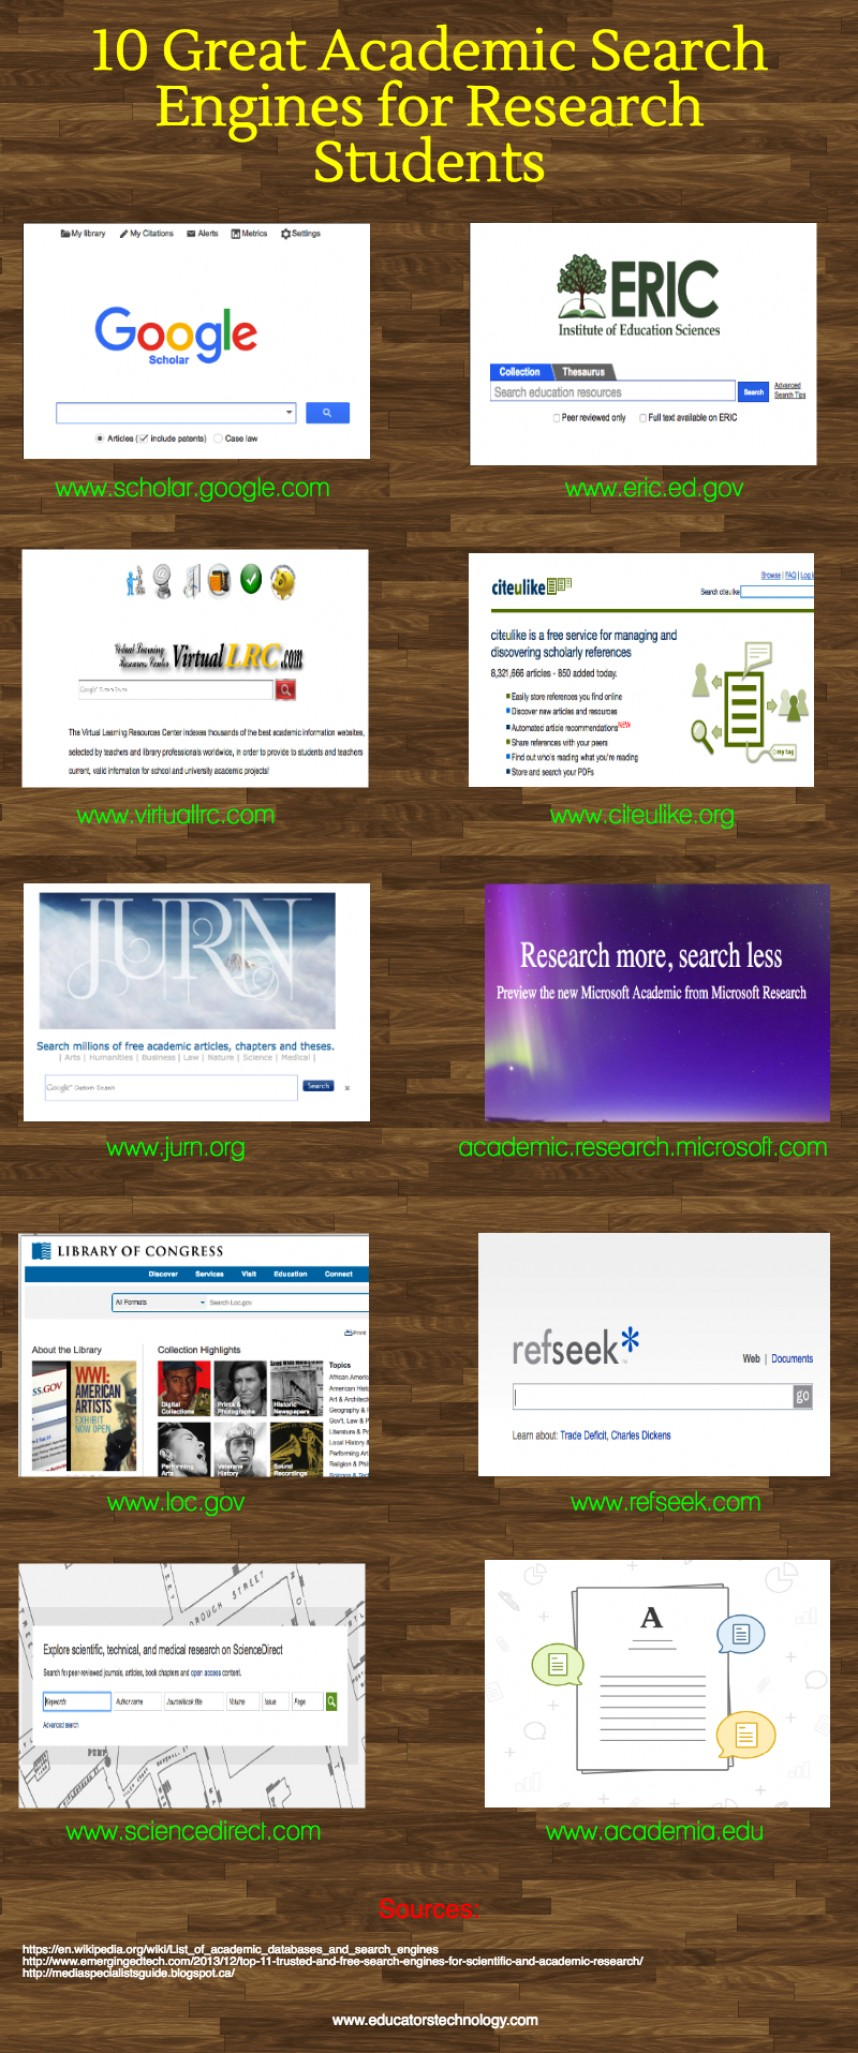 012 Research Paper Academic Websites Striking